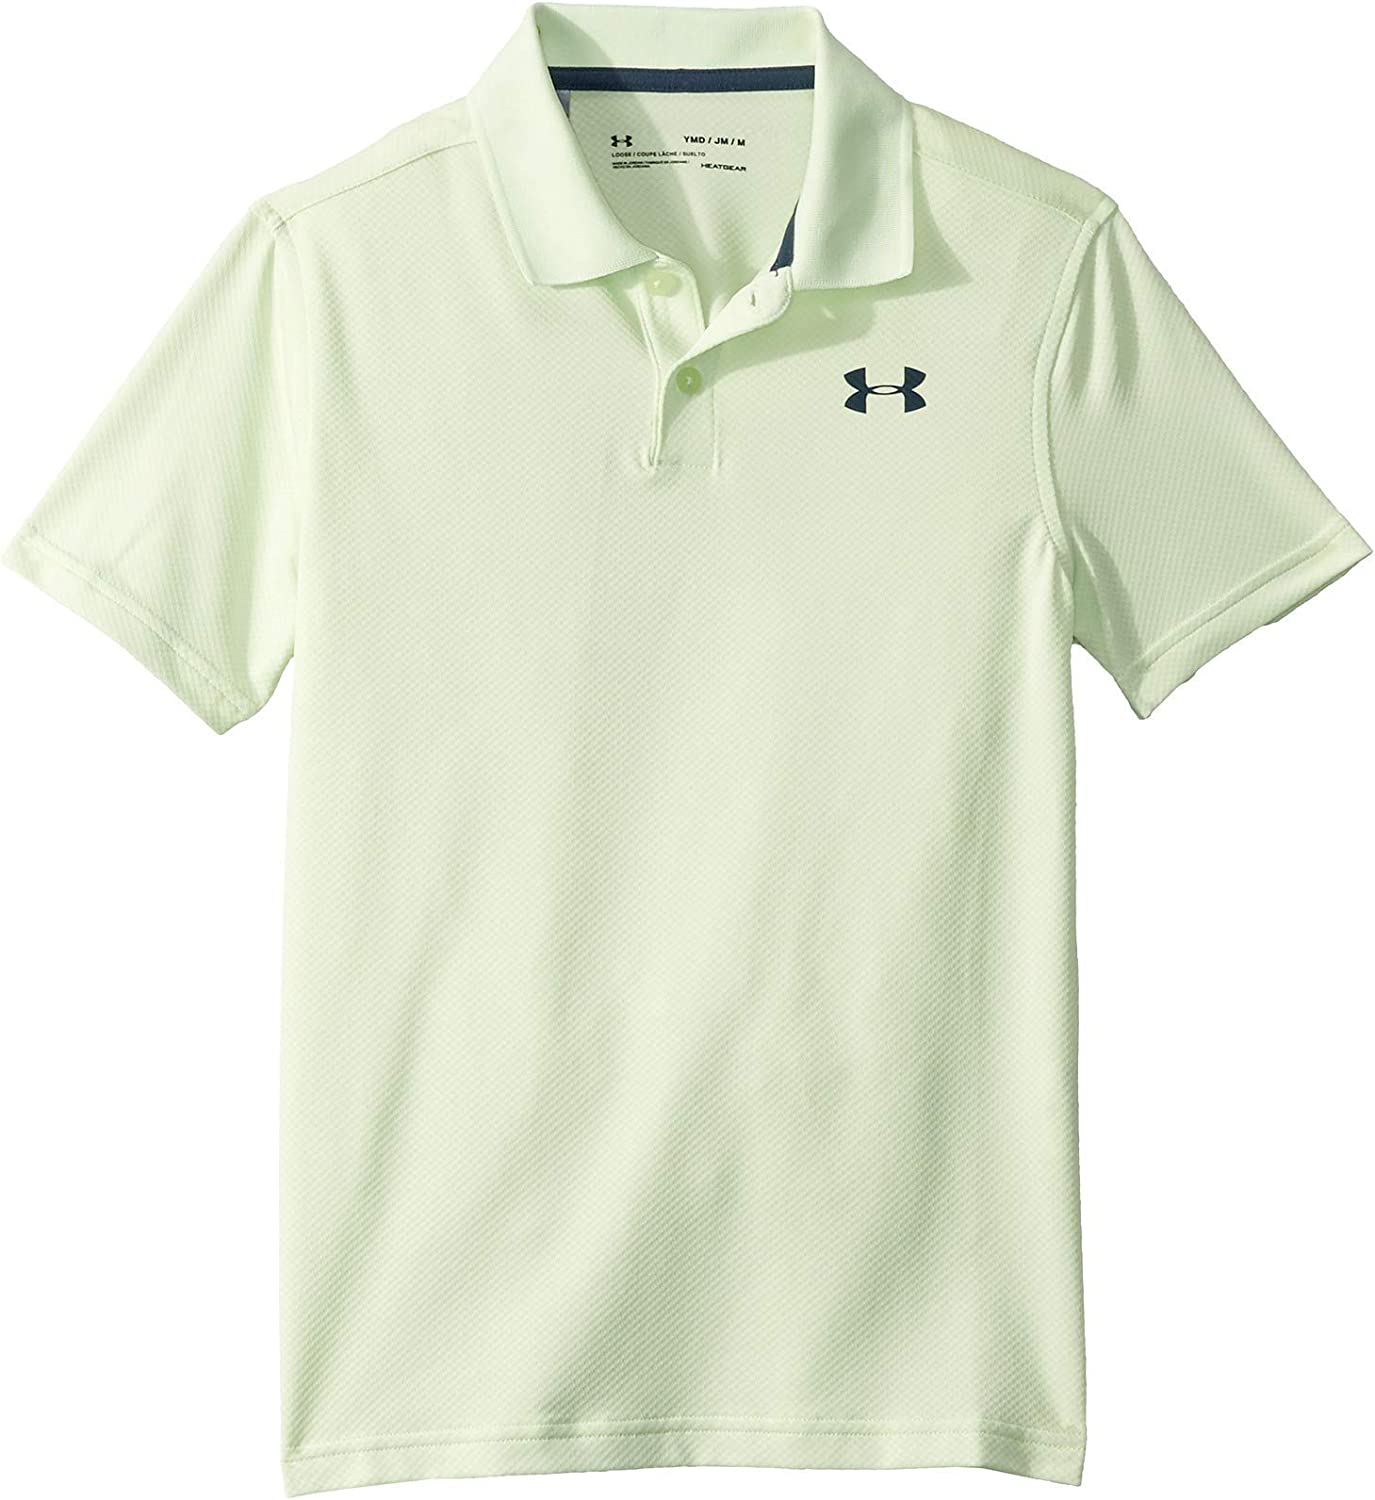 Under Armour Performance 2.0 Camisa Polo, Niños, Verde, YXL ...